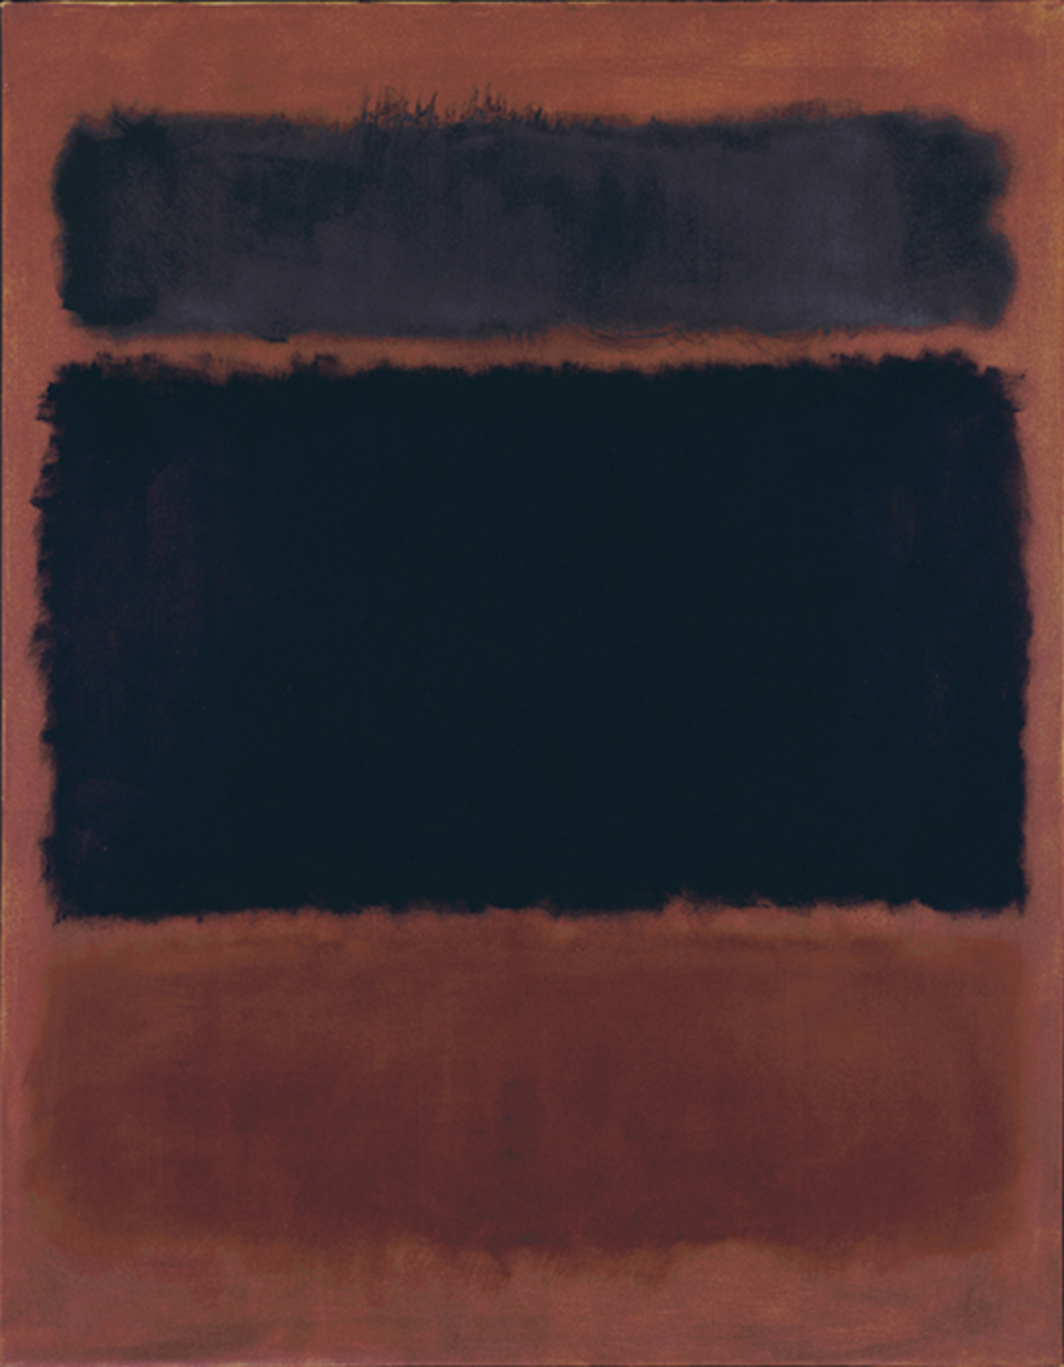 "Mark Rothko, Black in Deep Red, 1957, oil on canvas, 69 3/8 × 53 3/4"". © Kate Rothko Prizel & Christopher Rothko/Artists Rights Society (ARS), New York. Photo: The Mark Rothko"